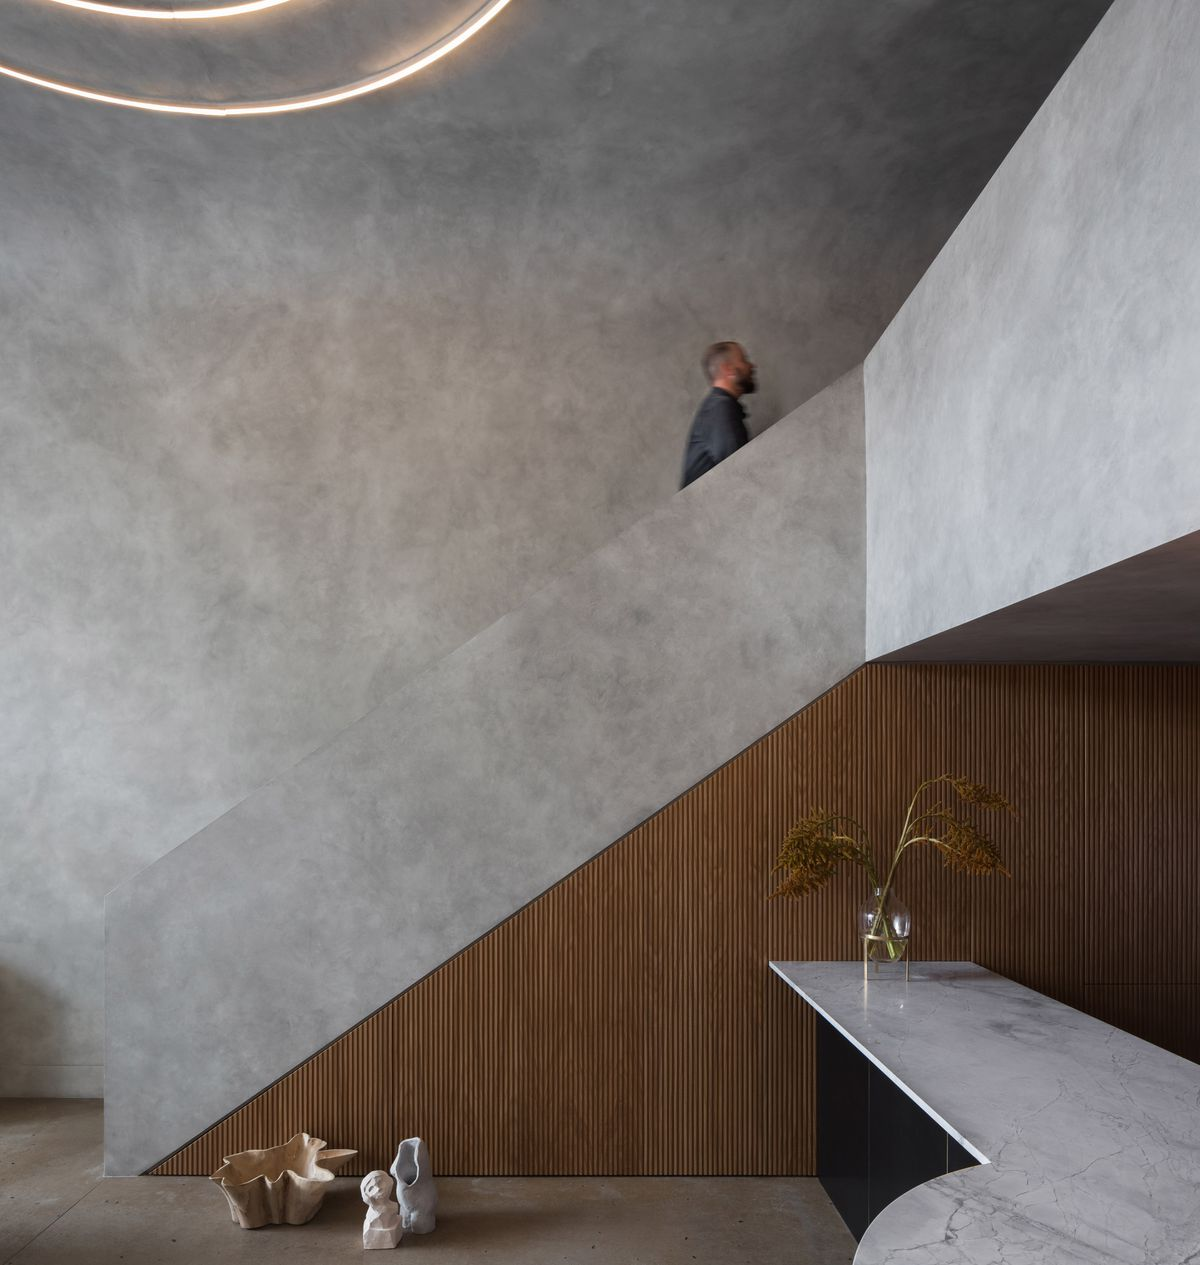 A man walks up a staircase that has a concrete bannister. There are concrete walls and concrete ceilings.